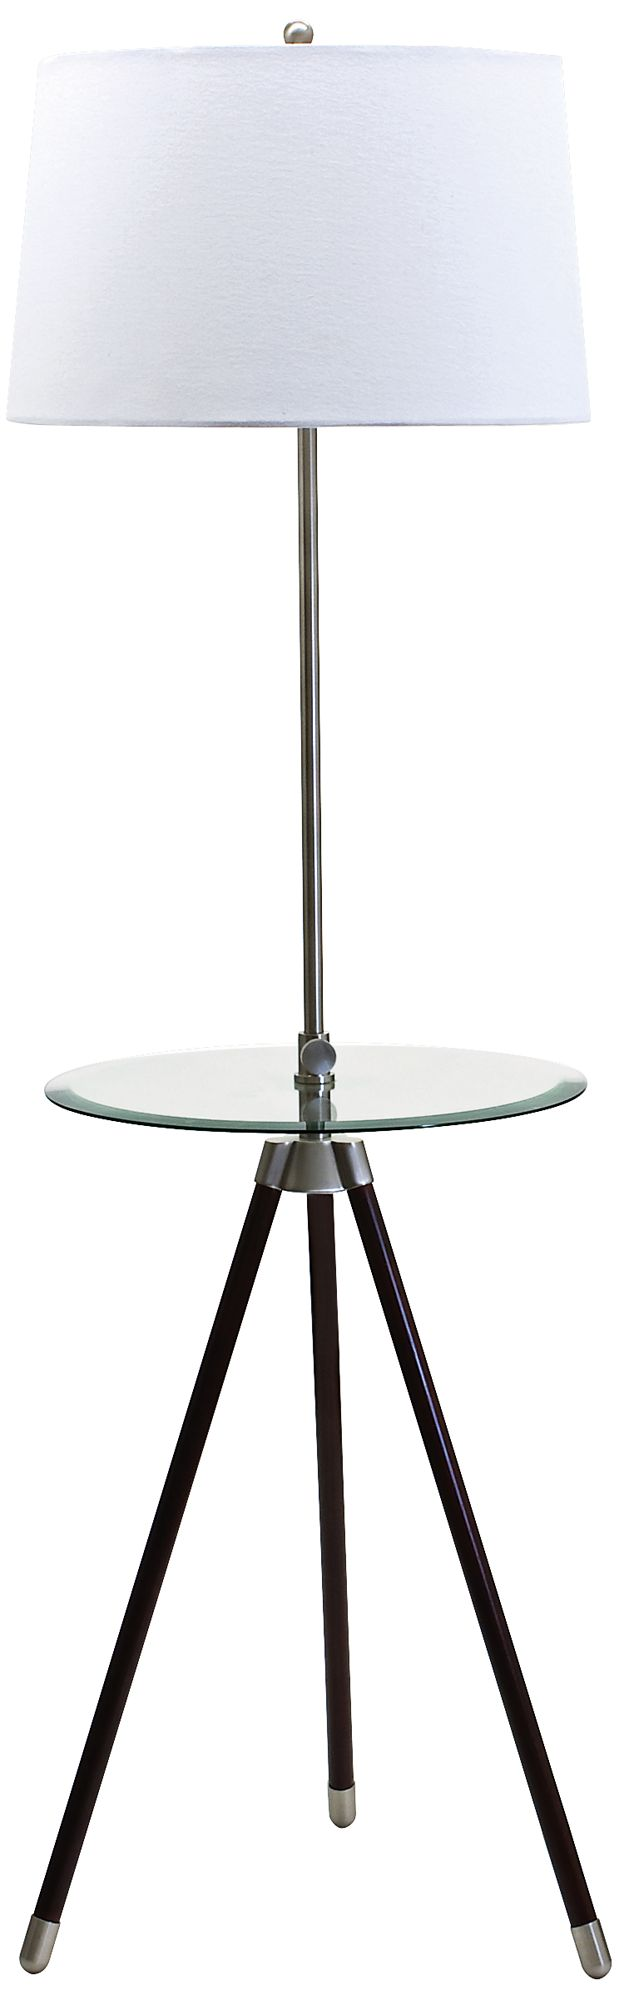 House Of Troy Satin Nickel Modern Tripod Table Floor Lamp